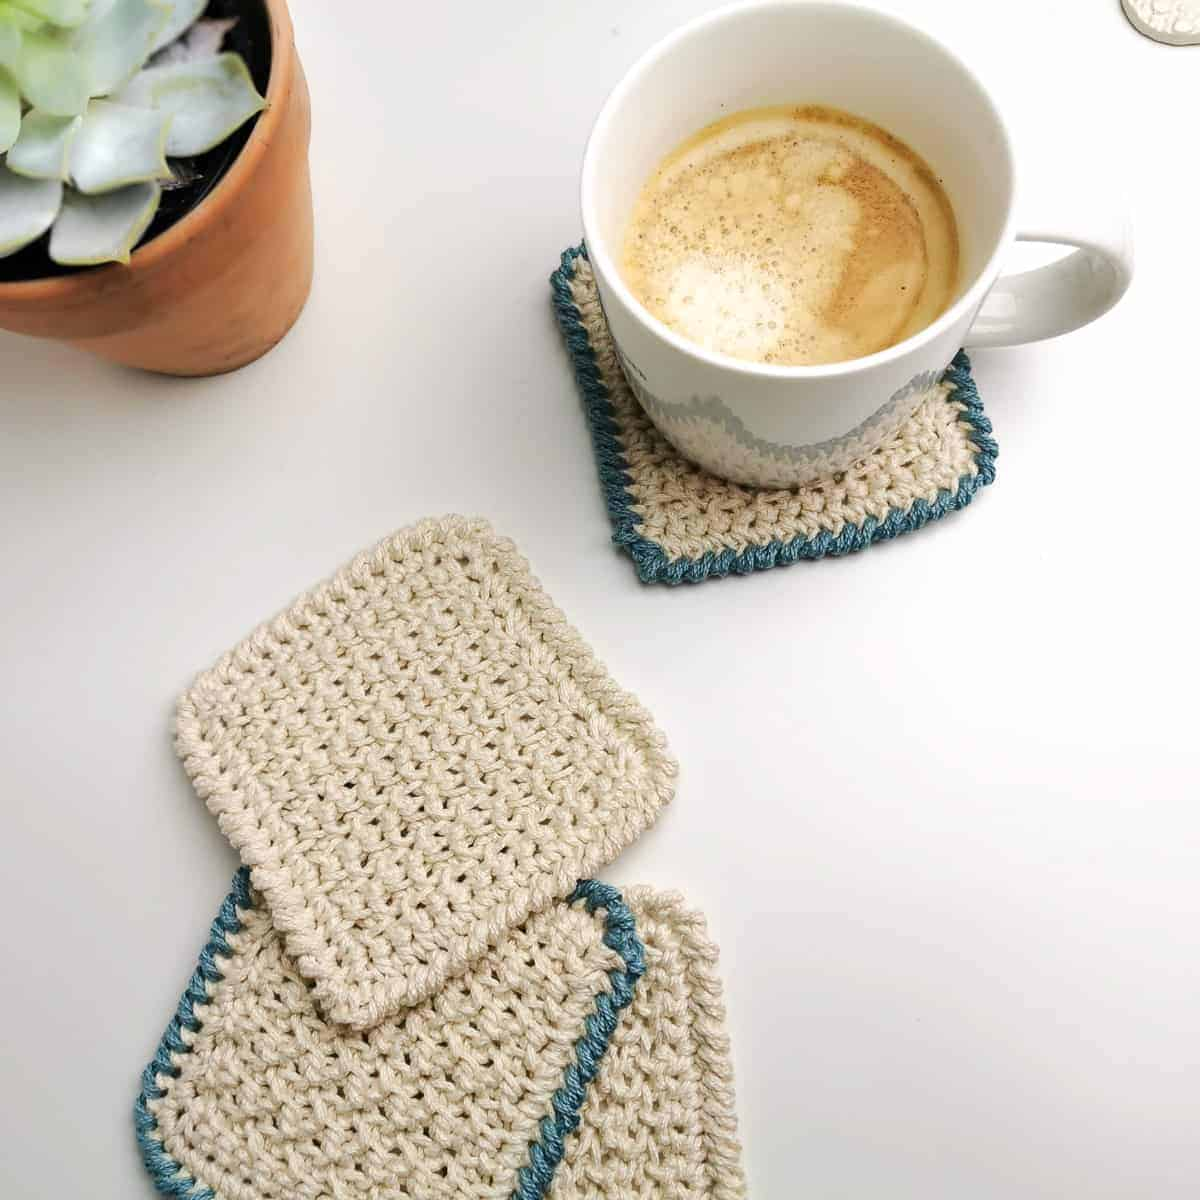 easy crochet coaster in cream and blue with a milky cup of coffee and house plant